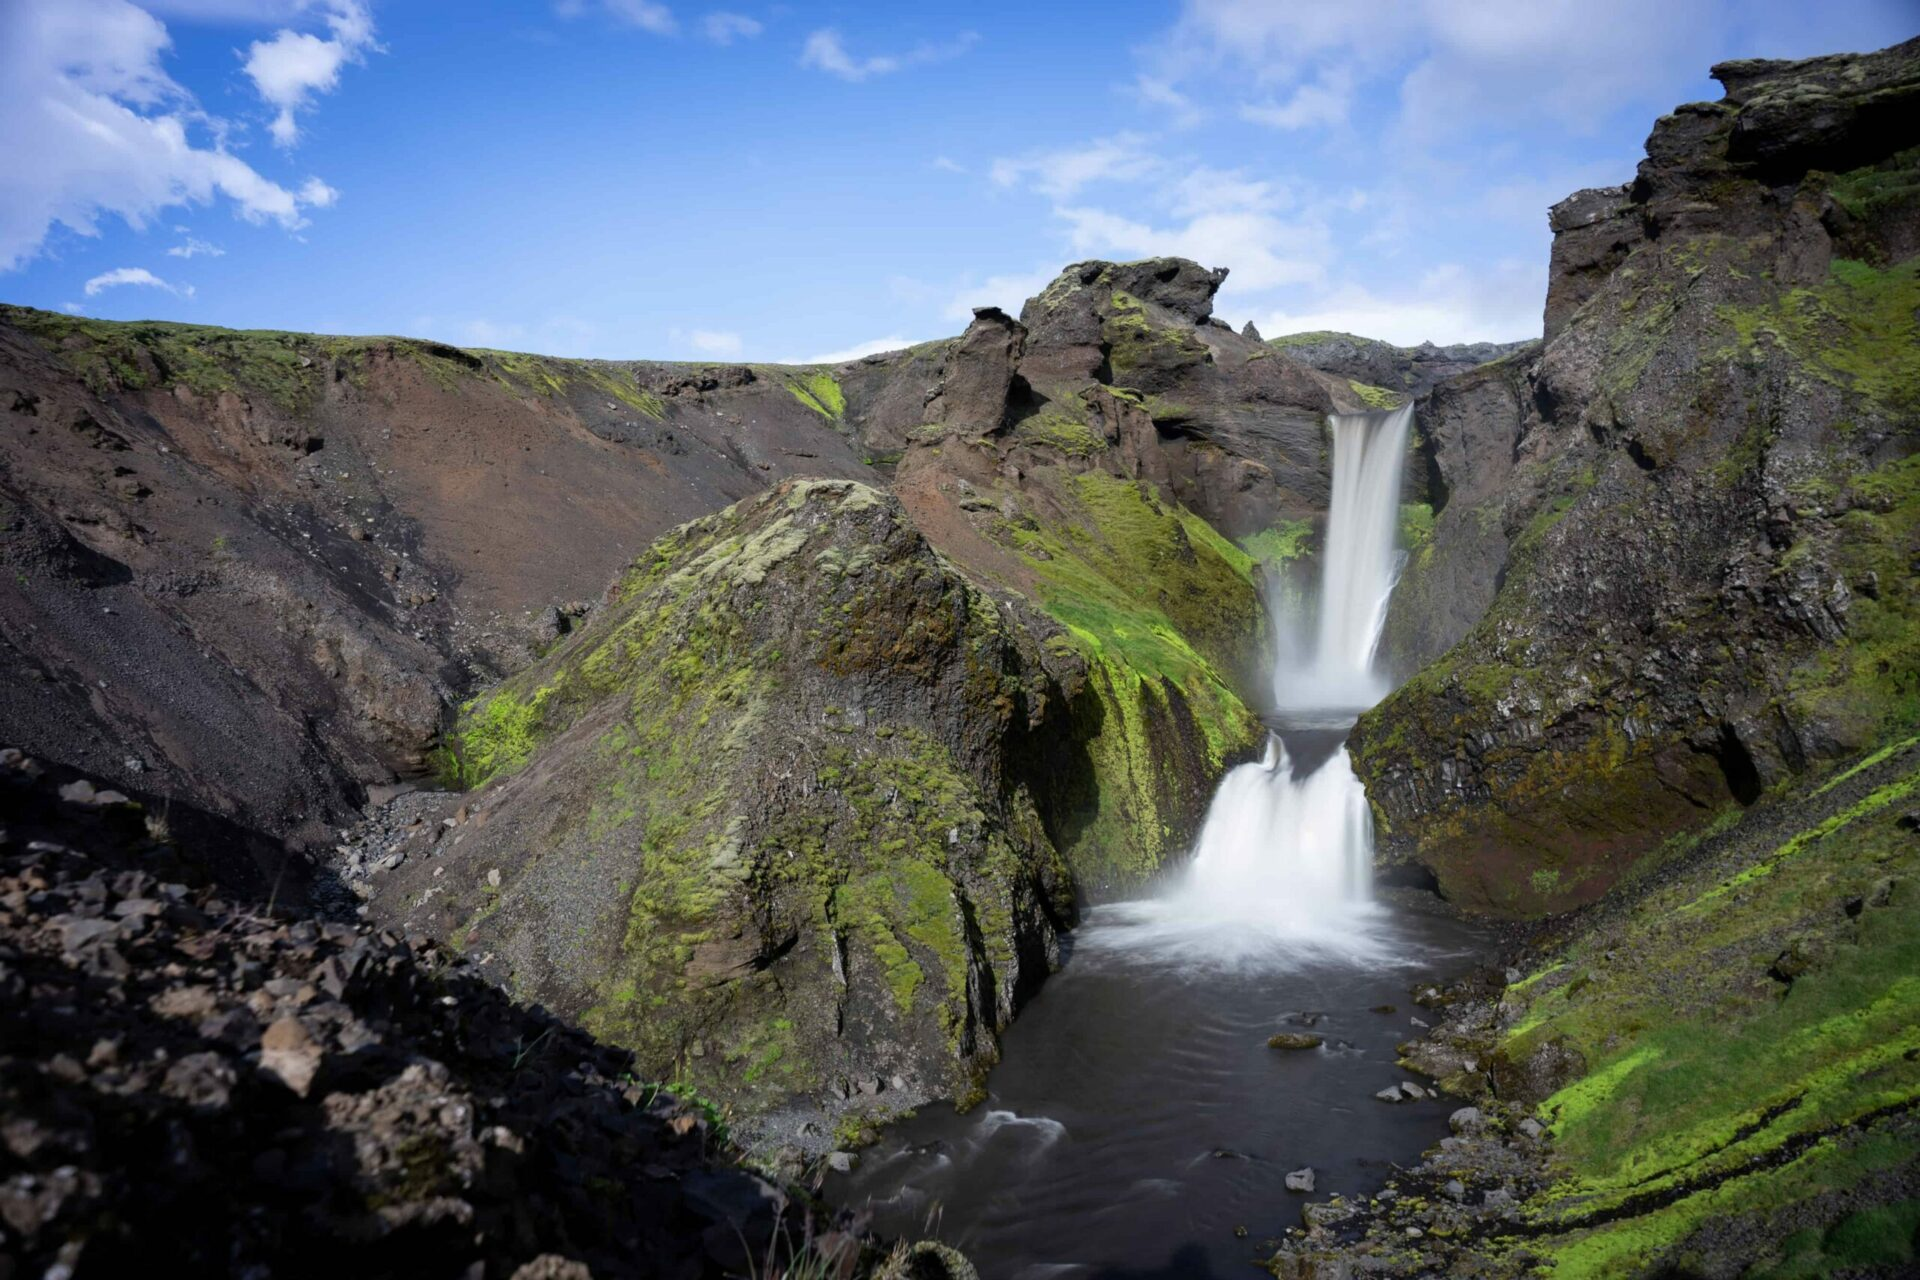 waterfall on the Fimmvorduhals hiking trail in the highlands of Iceland